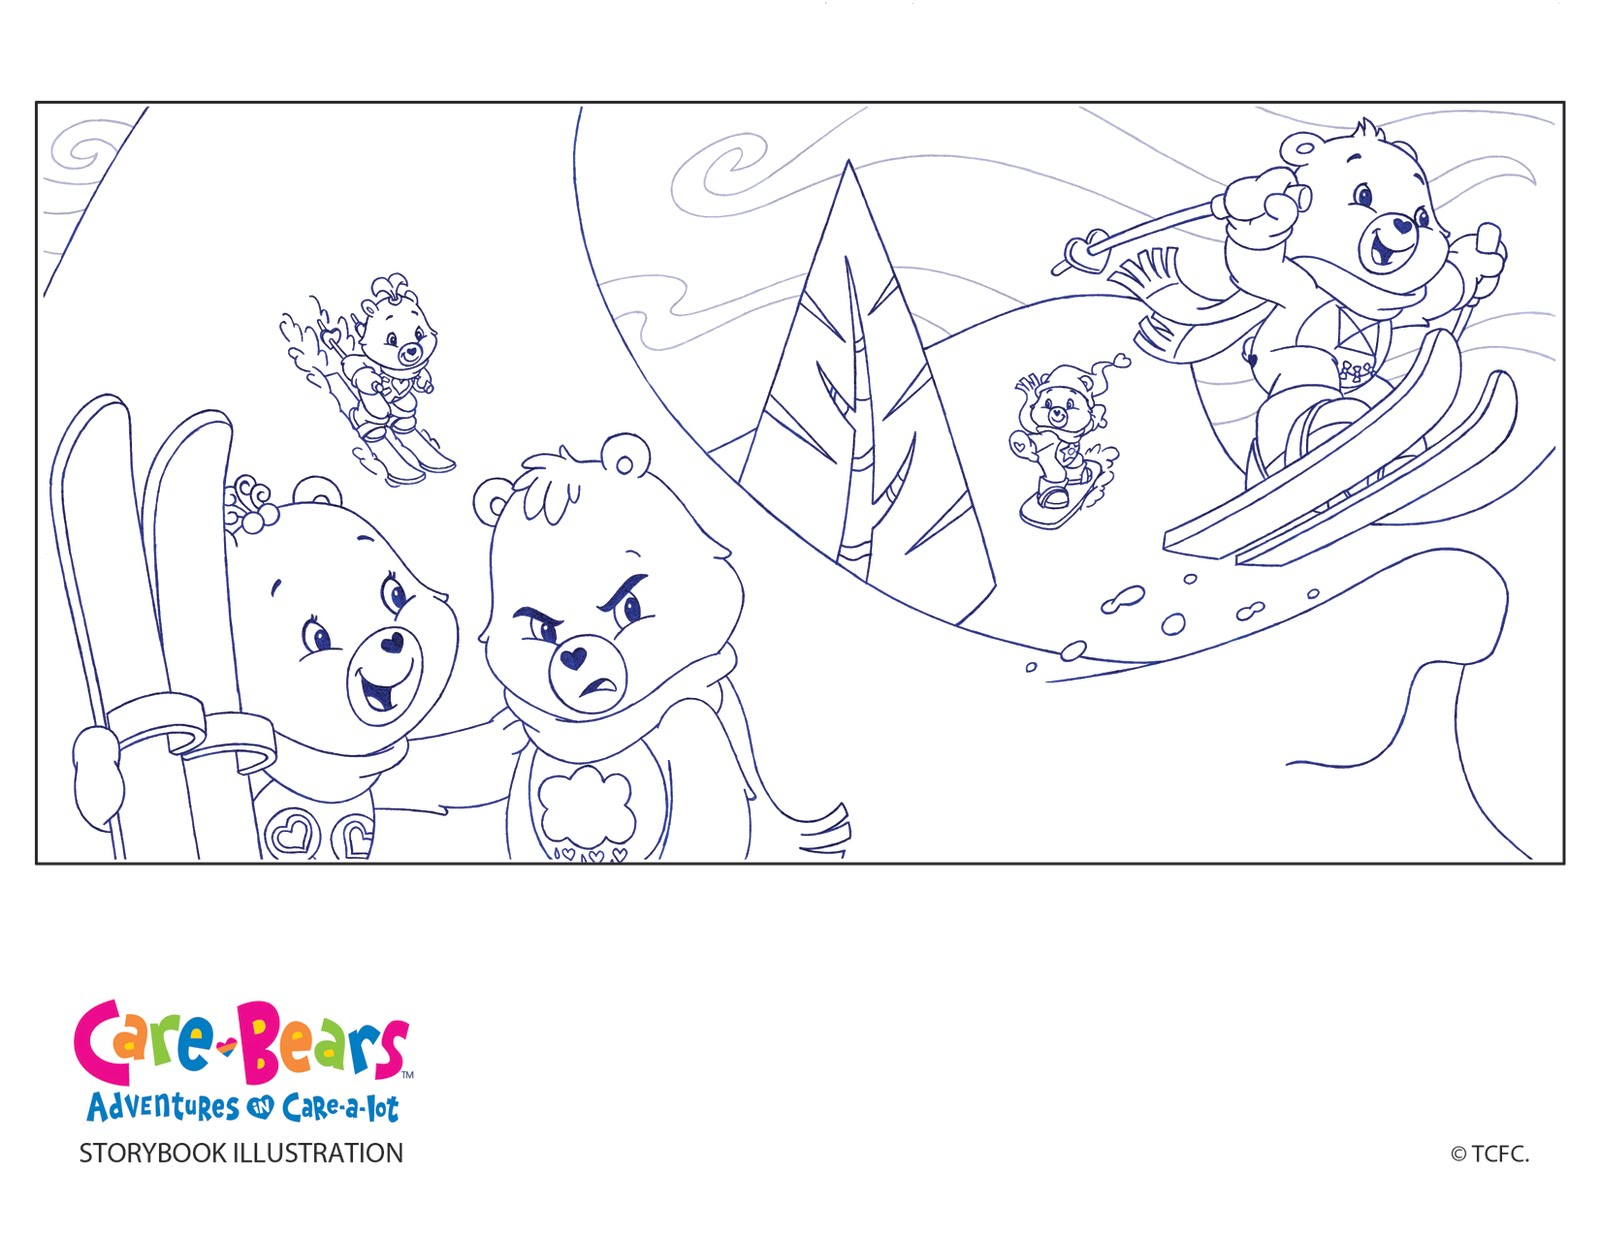 care bear coloring pages christmas - photo#17